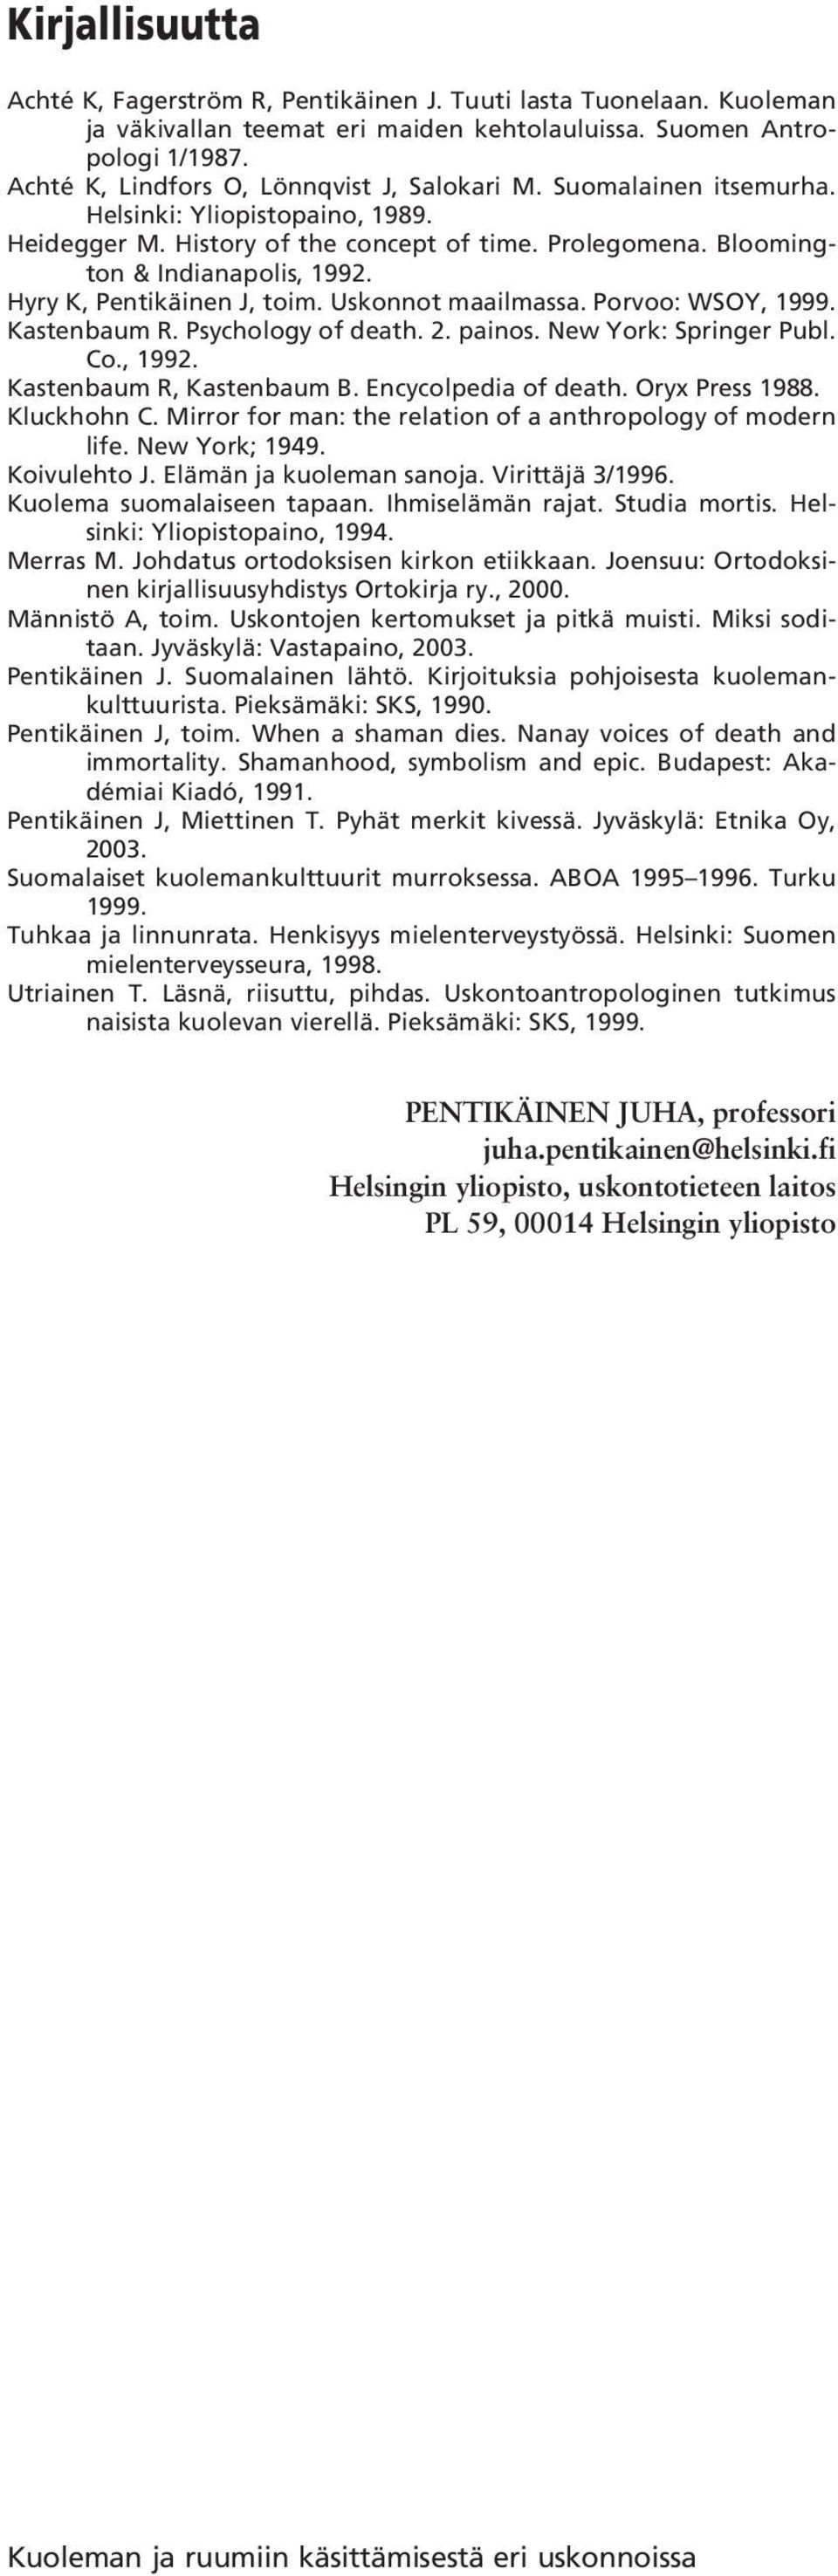 Hyry K, Pentikäinen J, toim. Uskonnot maailmassa. Porvoo: WSOY, 1999. Kastenbaum R. Psychology of death. 2. painos. New York: Springer Publ. Co., 1992. Kastenbaum R, Kastenbaum B.